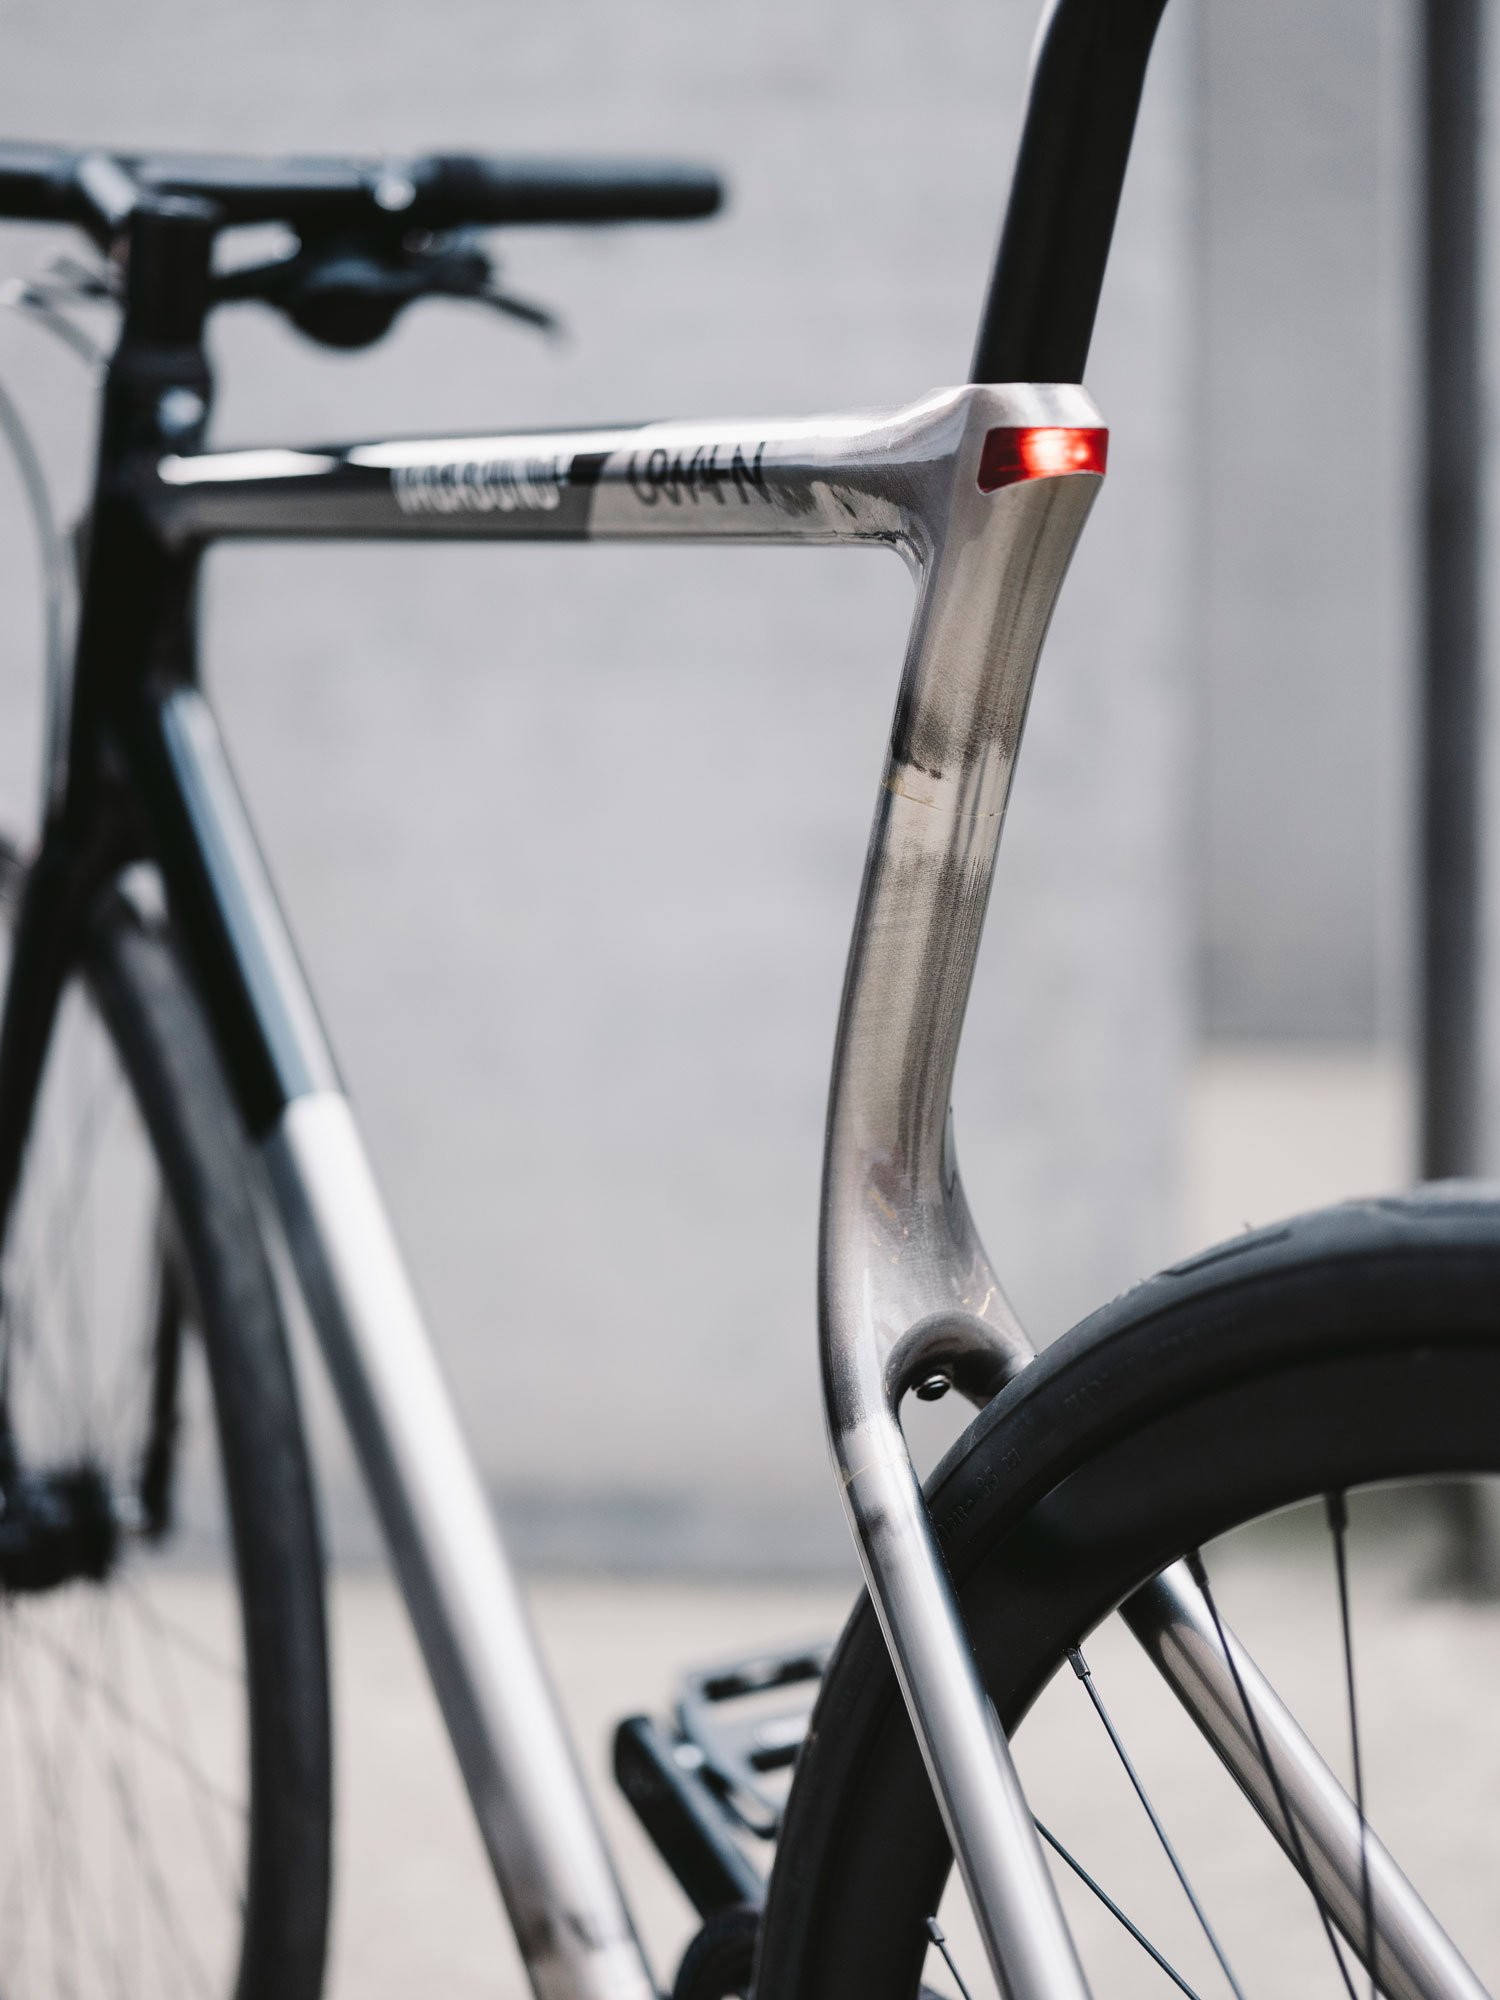 The Urwahn x Vagabund 3D printed bike frame. Photo via Urwahn/Vagabund Moto.